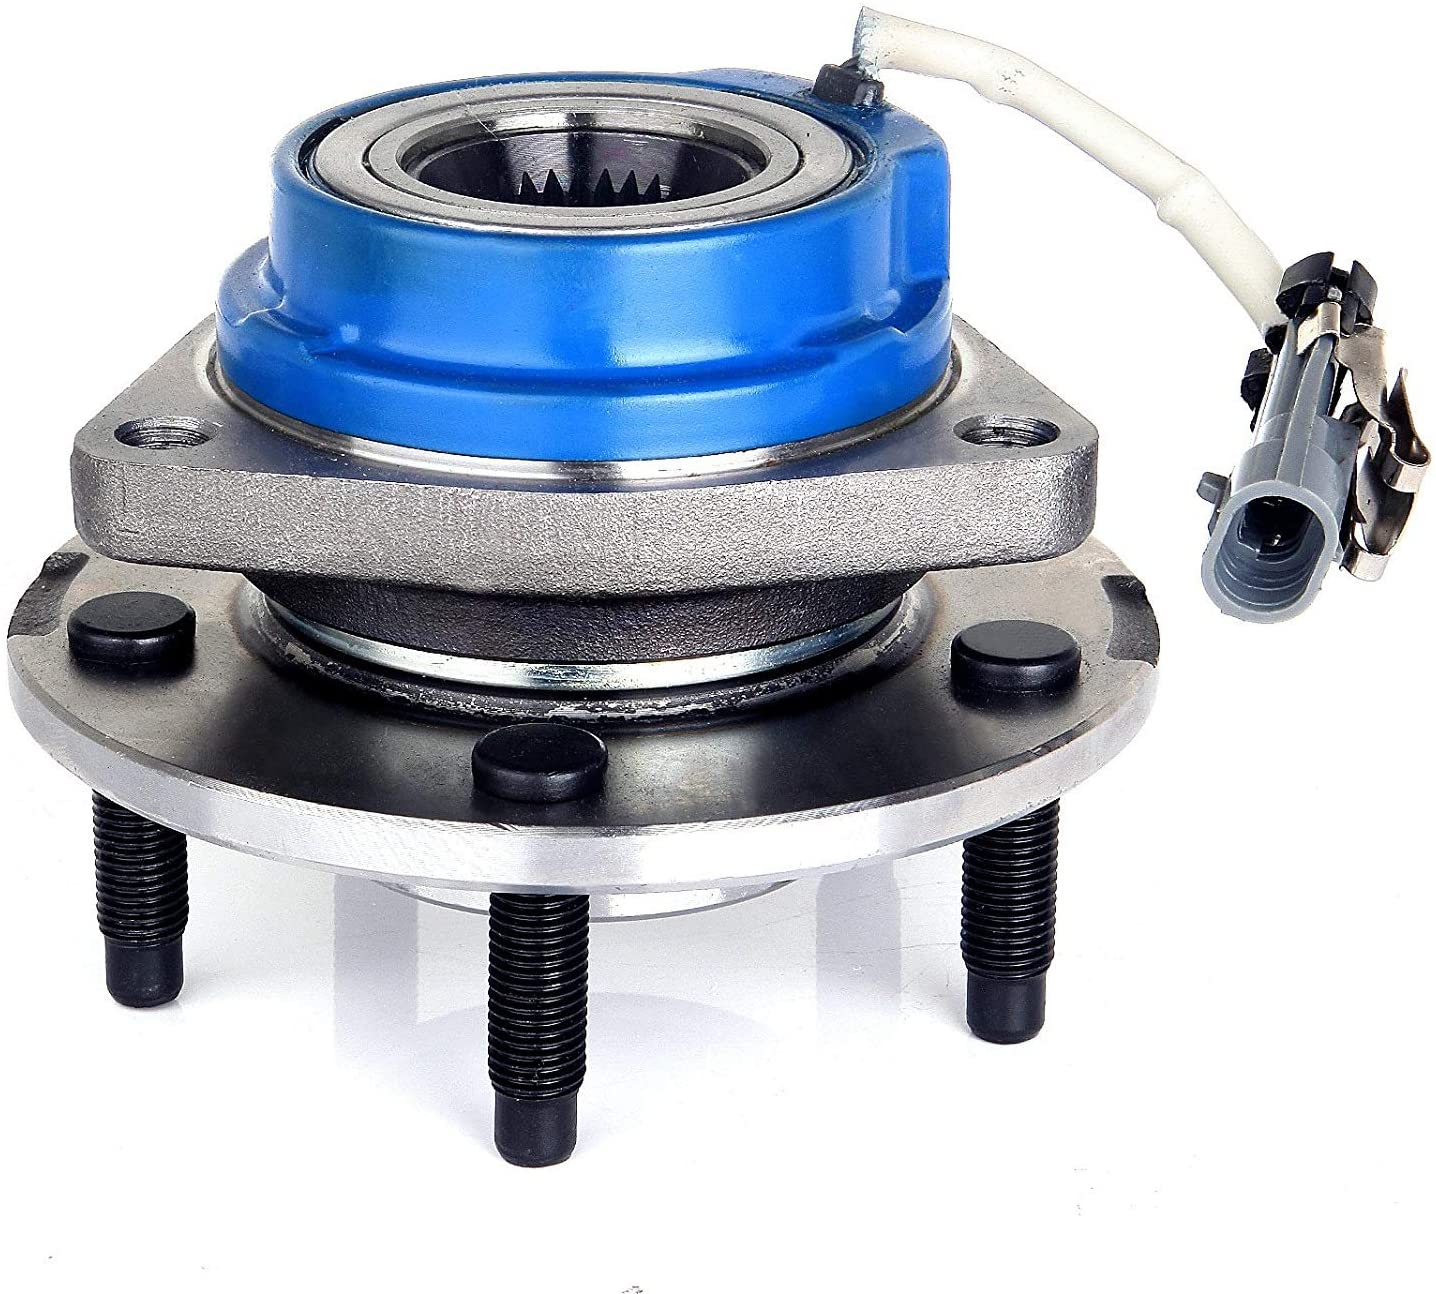 Bodeman - Front Wheel Bearing and Hub Assembly w/ABS for 2000-2005 Chevy Impala, Monte Carlo, Buick LeSabre, Pontiac Bonneville - 513121